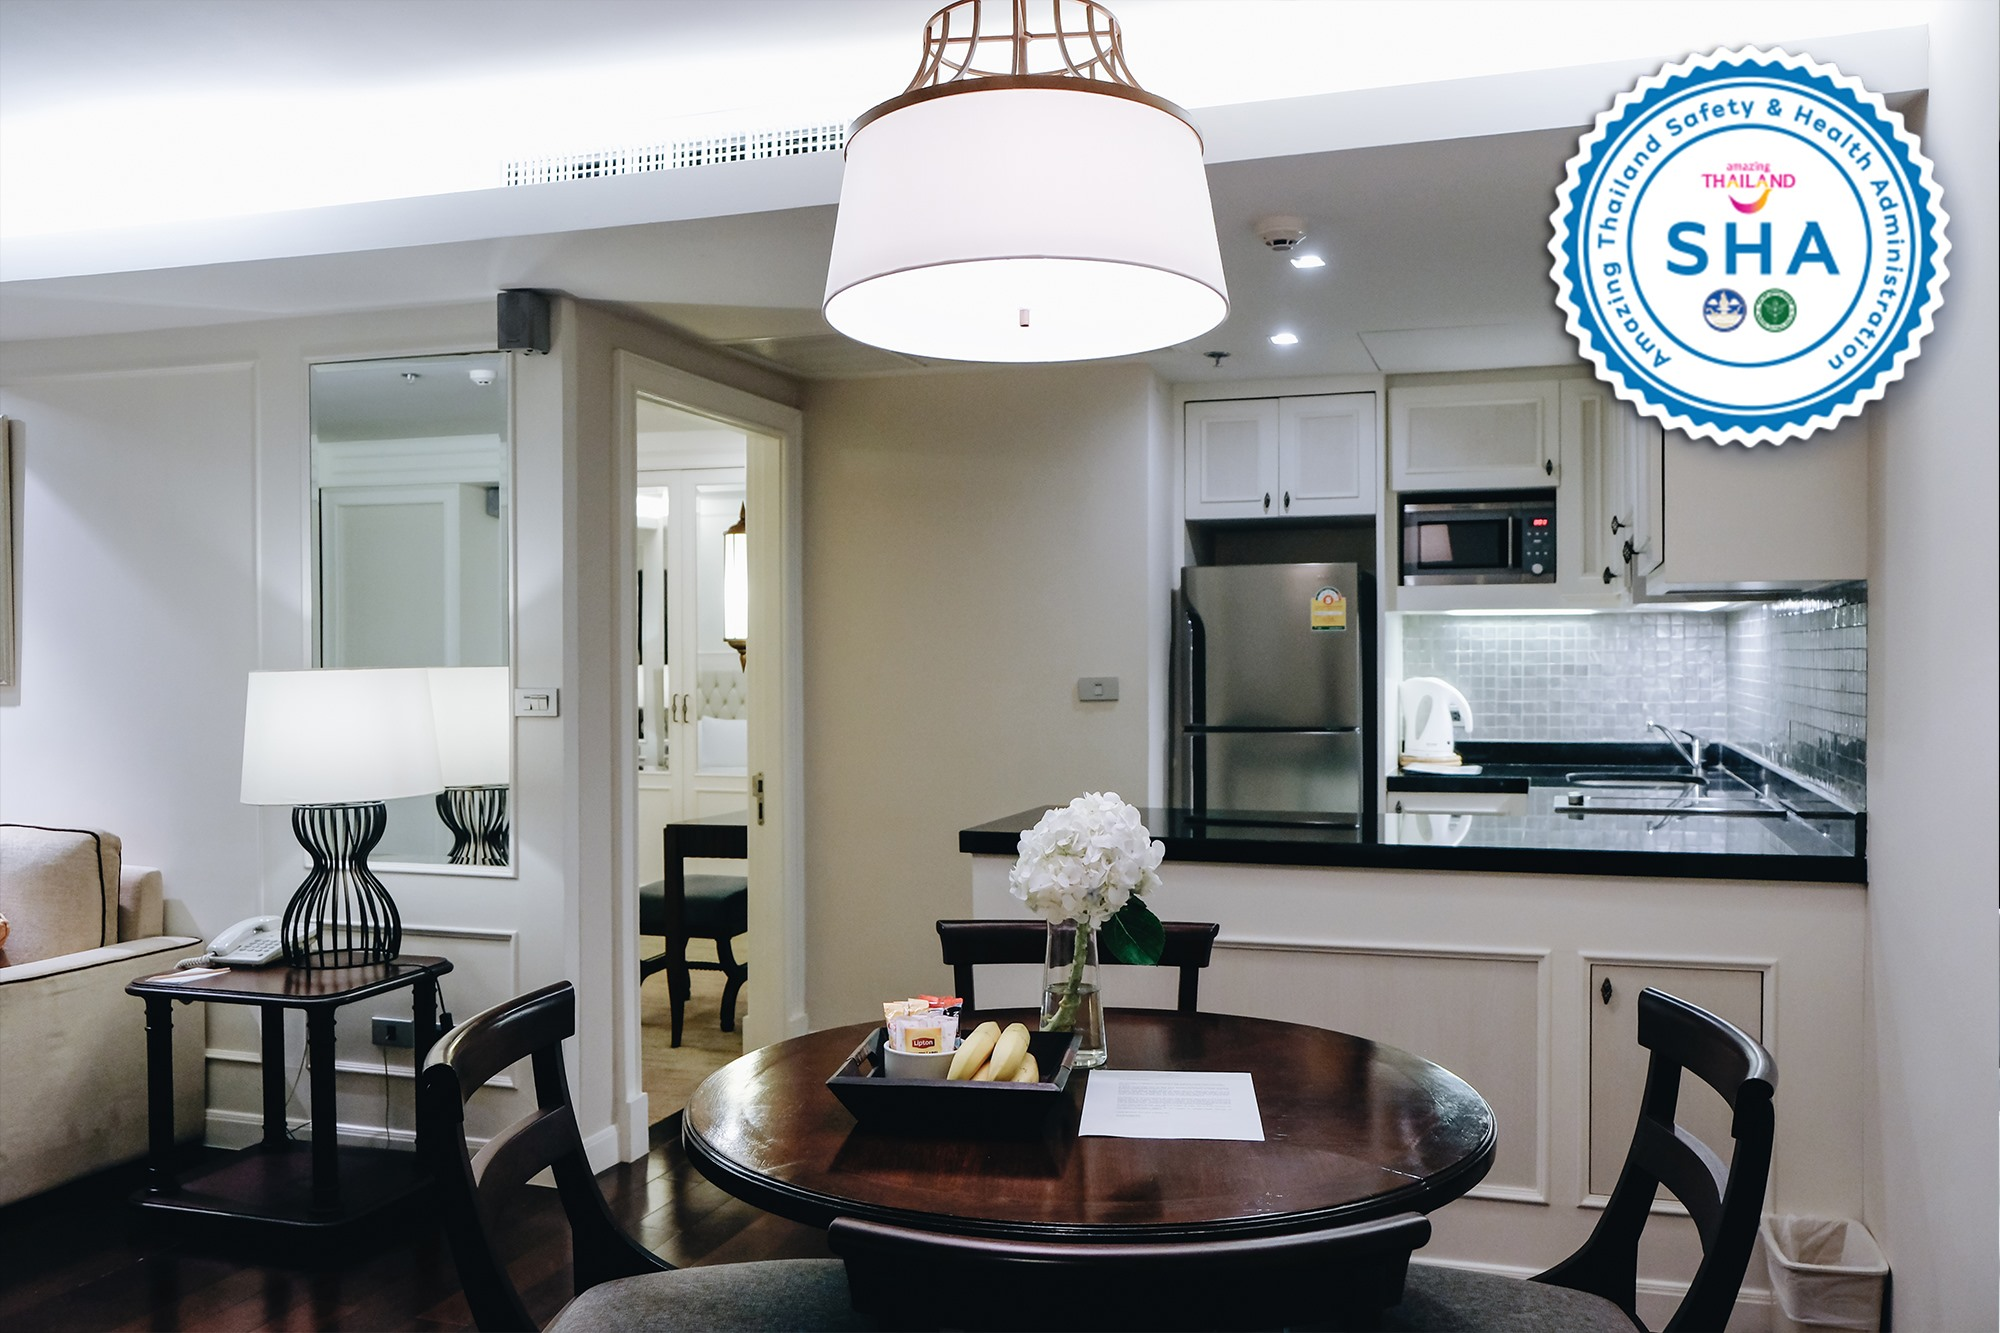 PLEASANT AND SAFE STAY AT BLISTON SUWAN PARK VIEW HOTEL CERTIFIED BY SHA